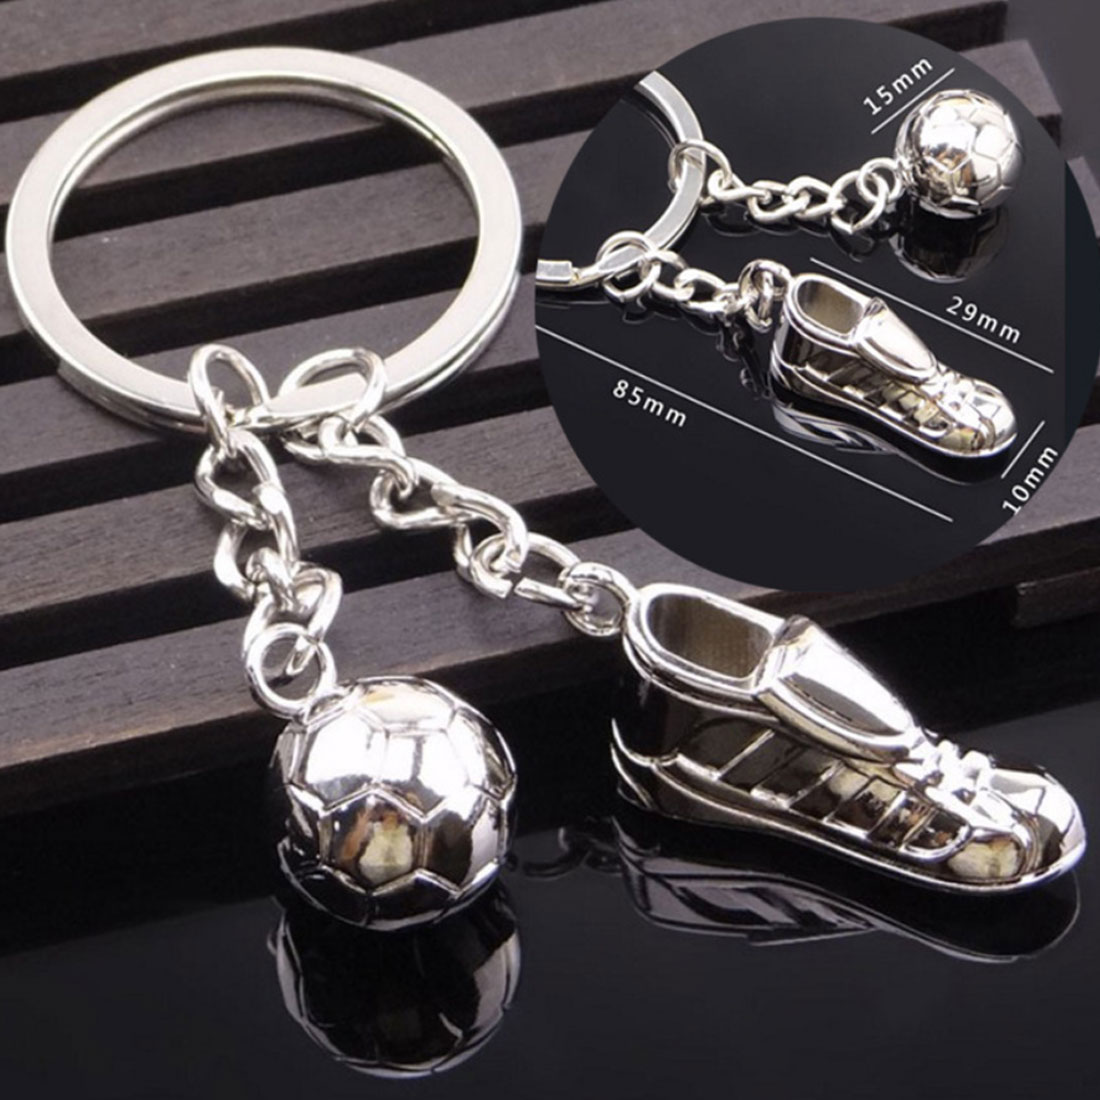 Unique Soccer Shoes Football Ball Stainless Steel Metal Keychain Key Chain Ring Gift Football